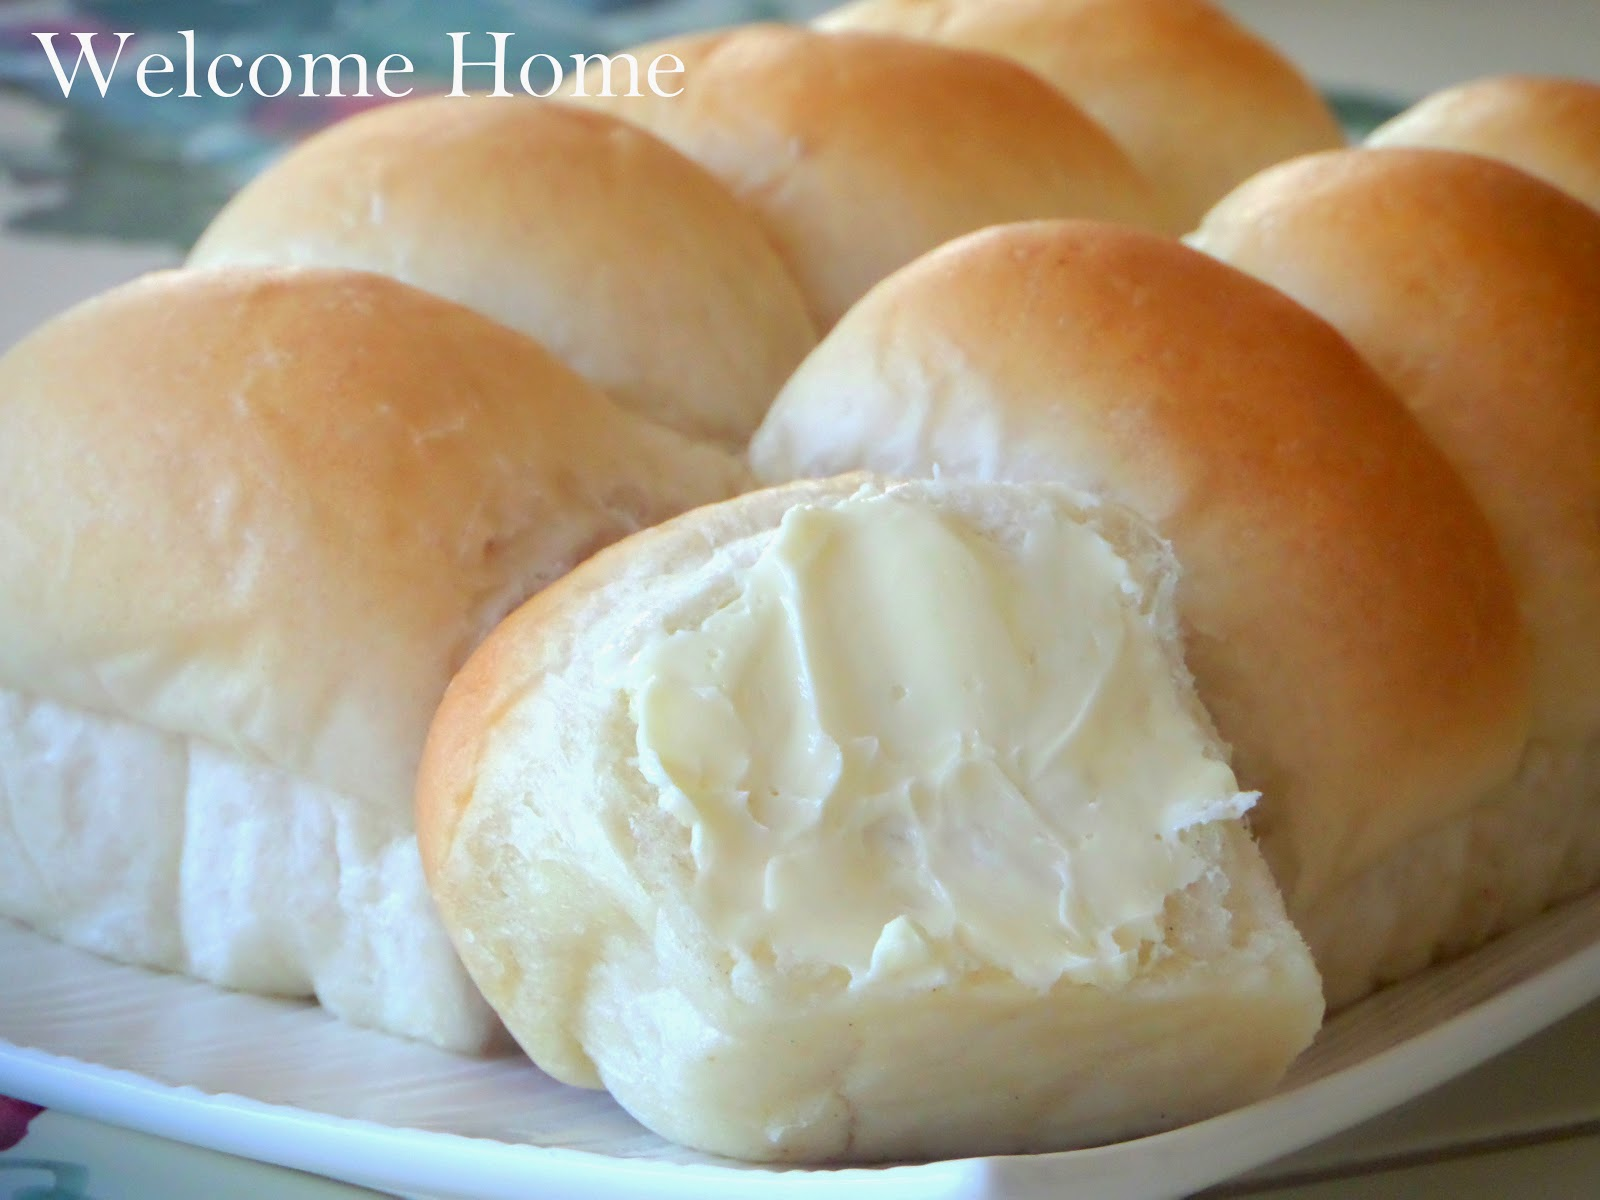 Welcome Home Blog: Homemade Dinner Rolls (Yeast Rolls)